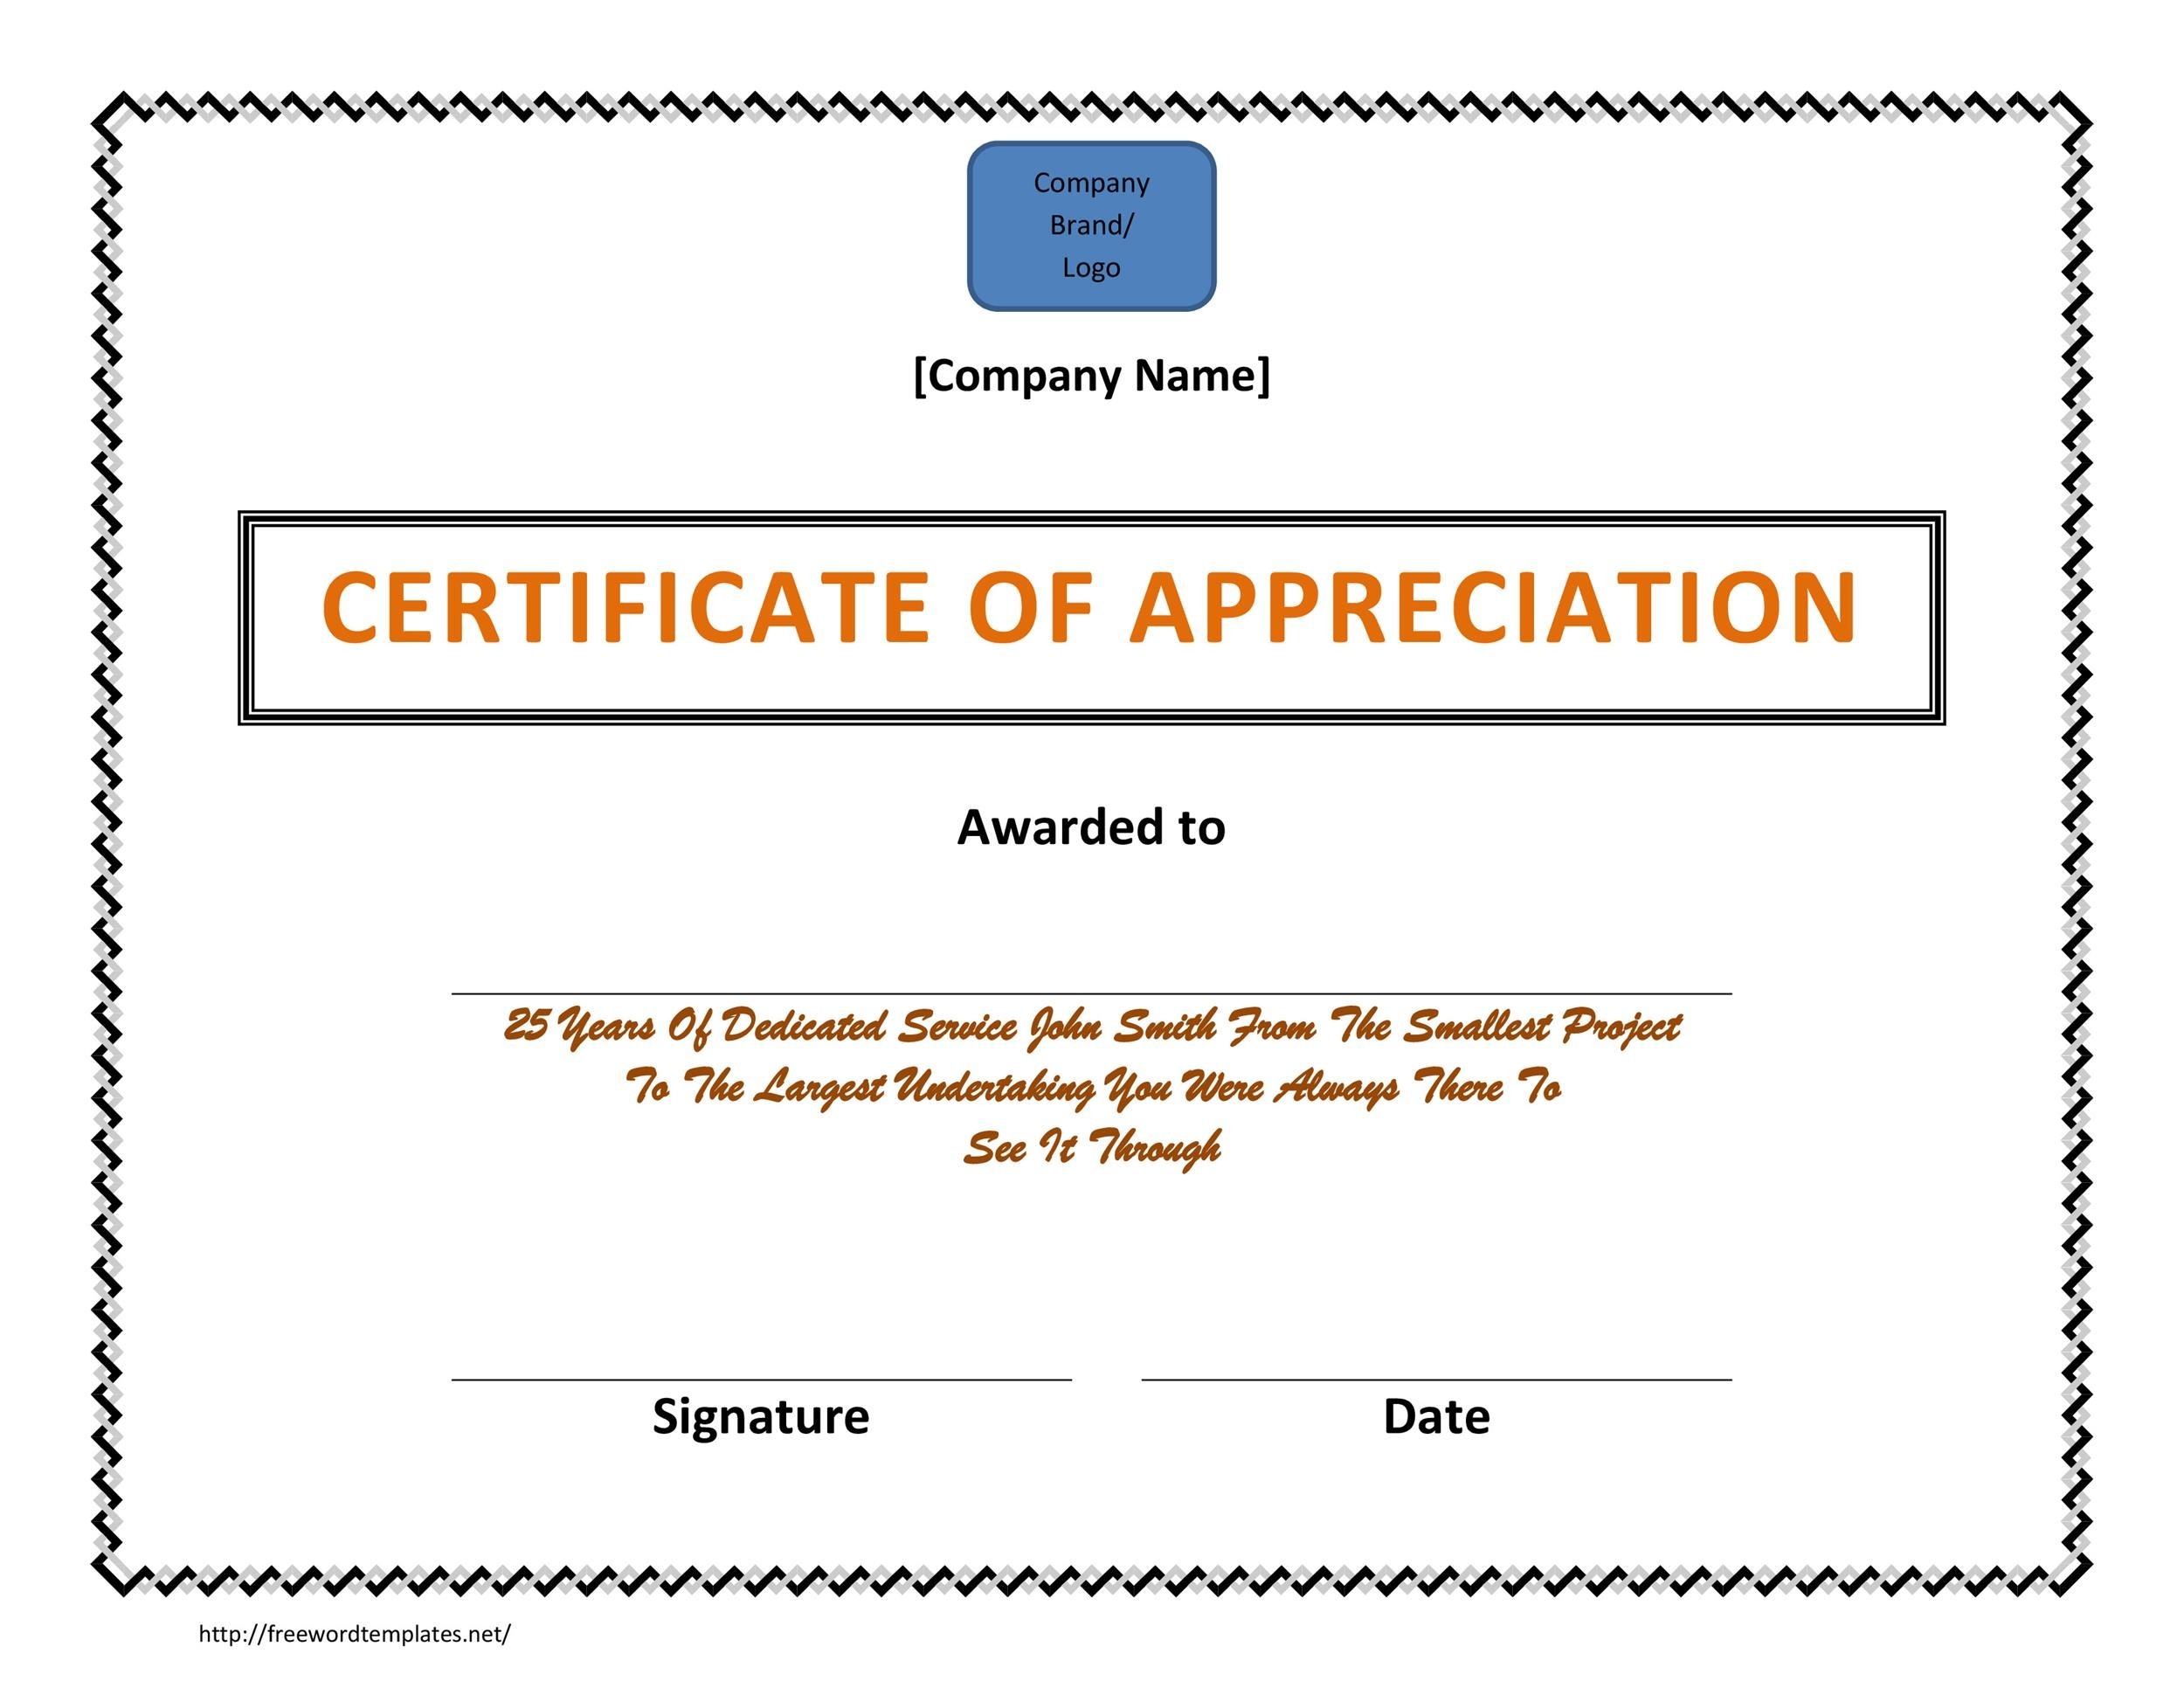 Free certificate of appreciation templates and letters printable certificate of appreciation 05 yadclub Image collections